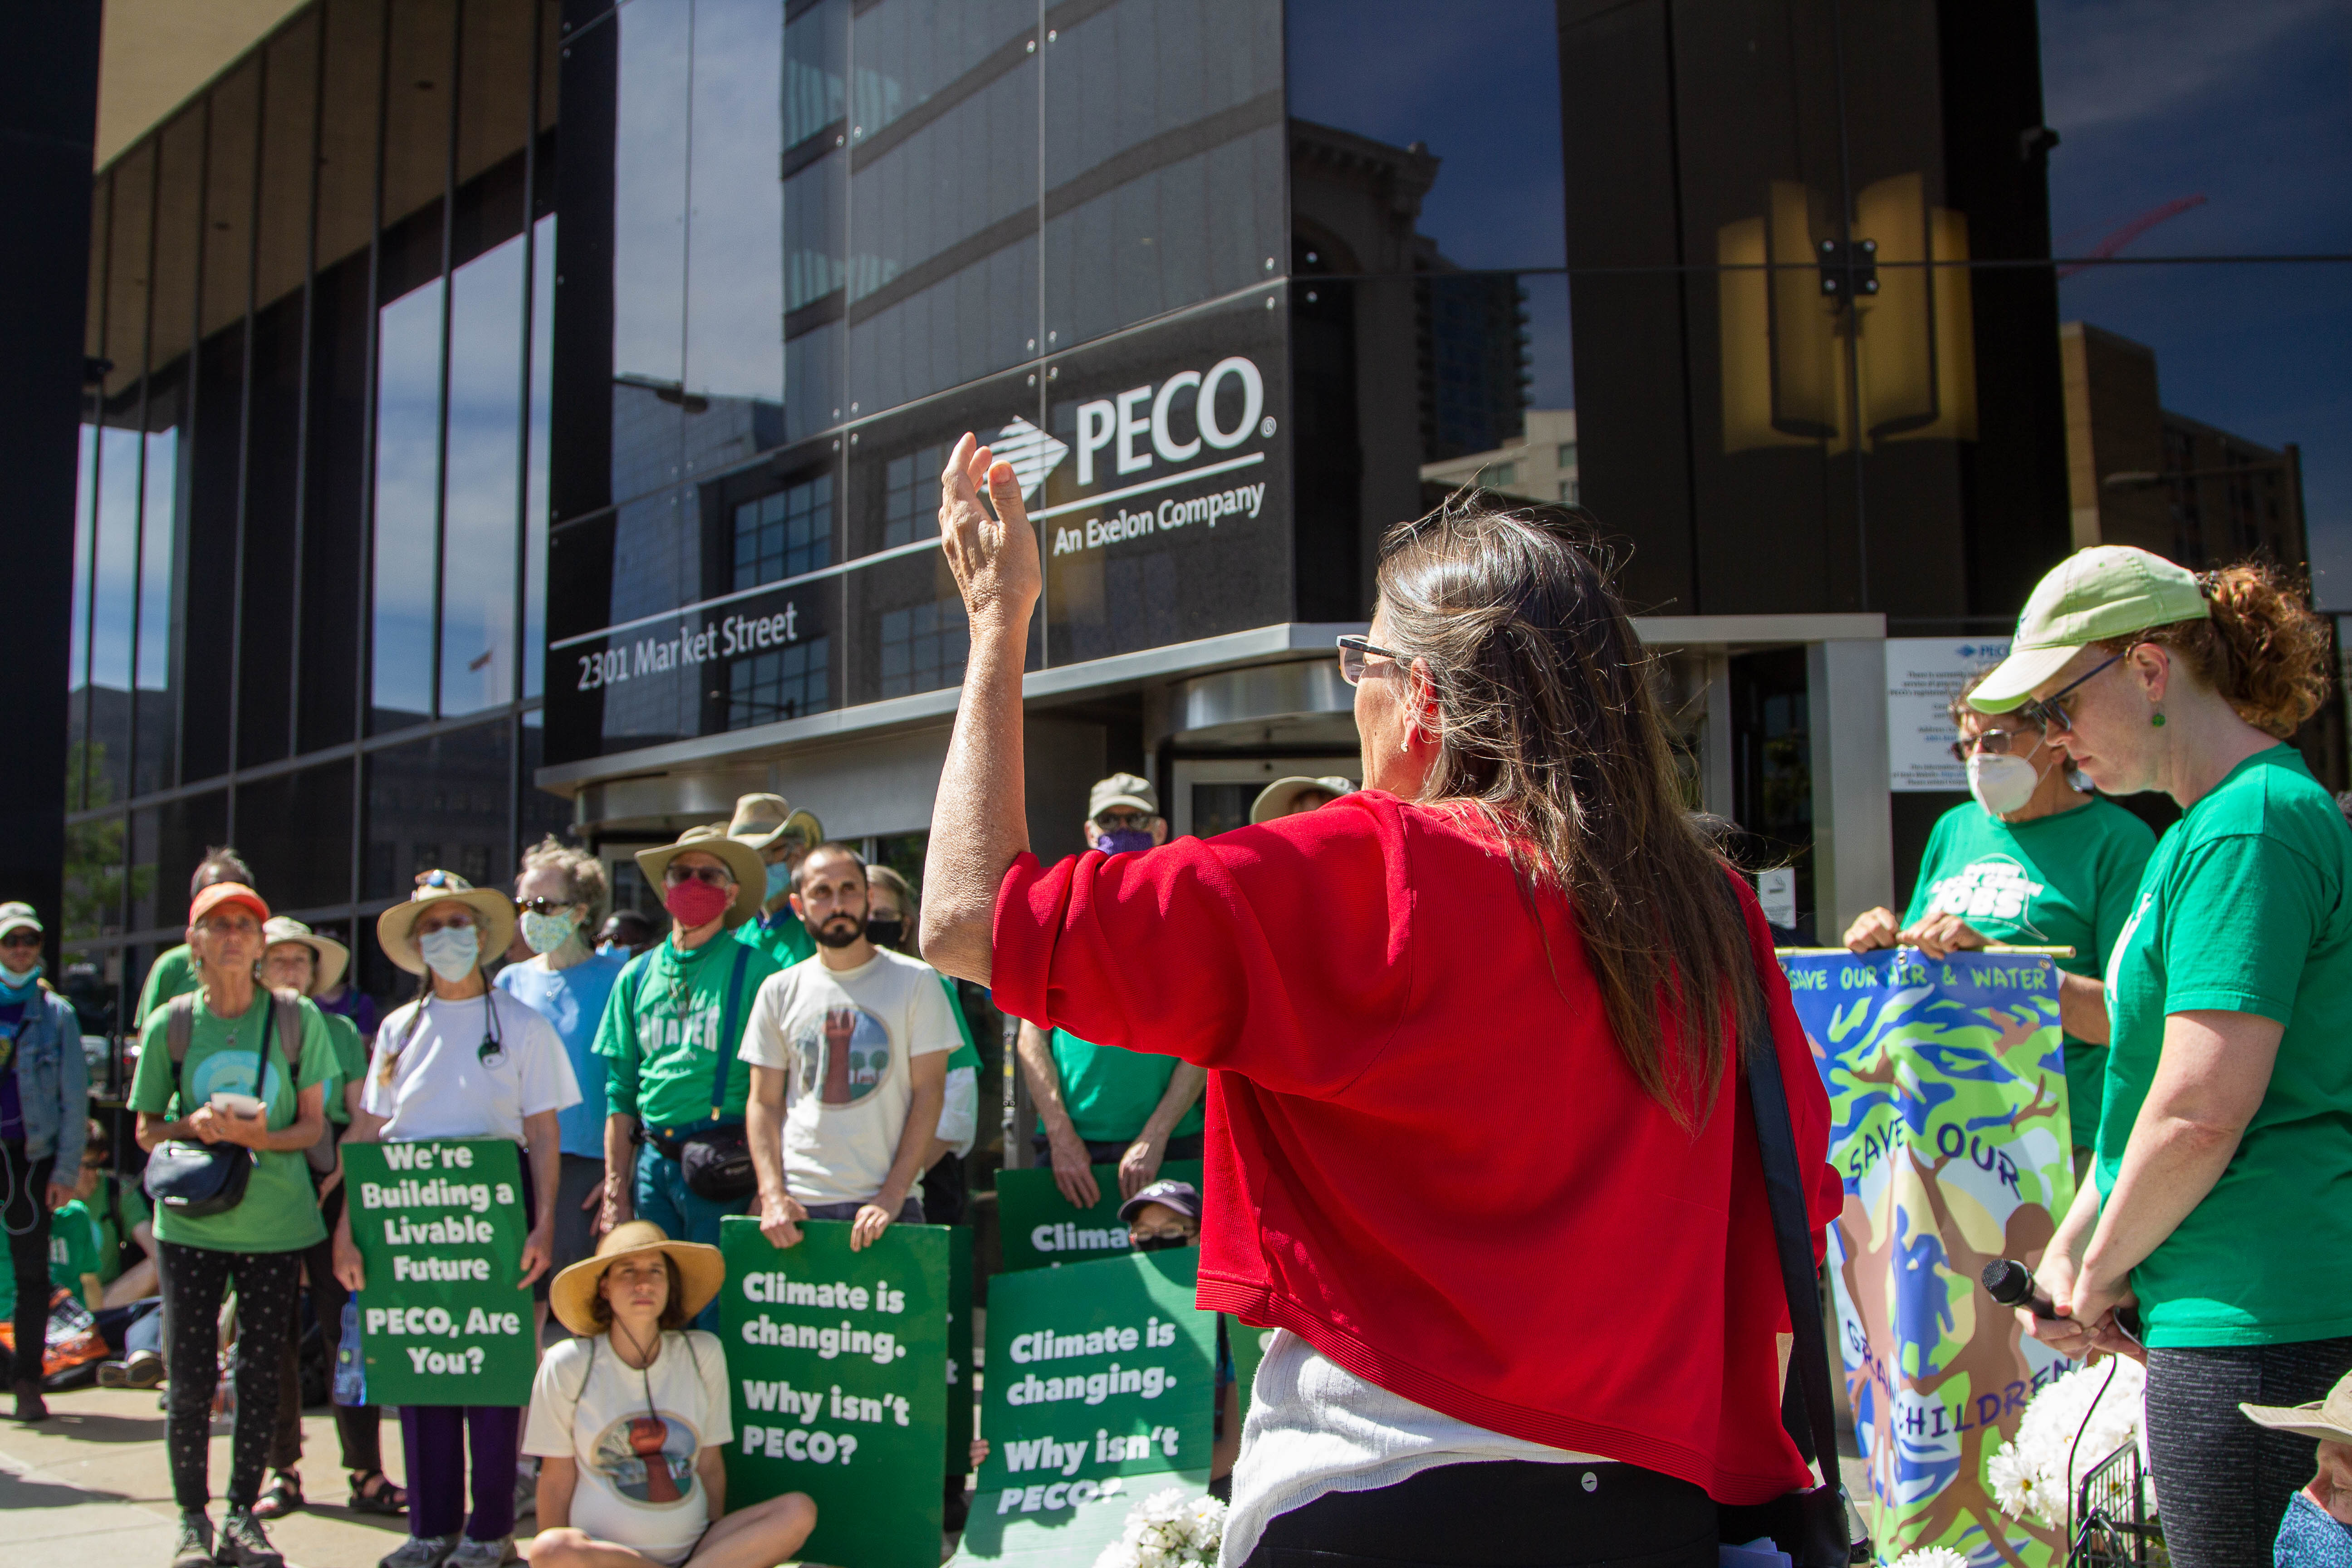 An activist in a red sweater with her back to the camera speaks emphatically to a group of activists gathered in front of PECO's headquarters